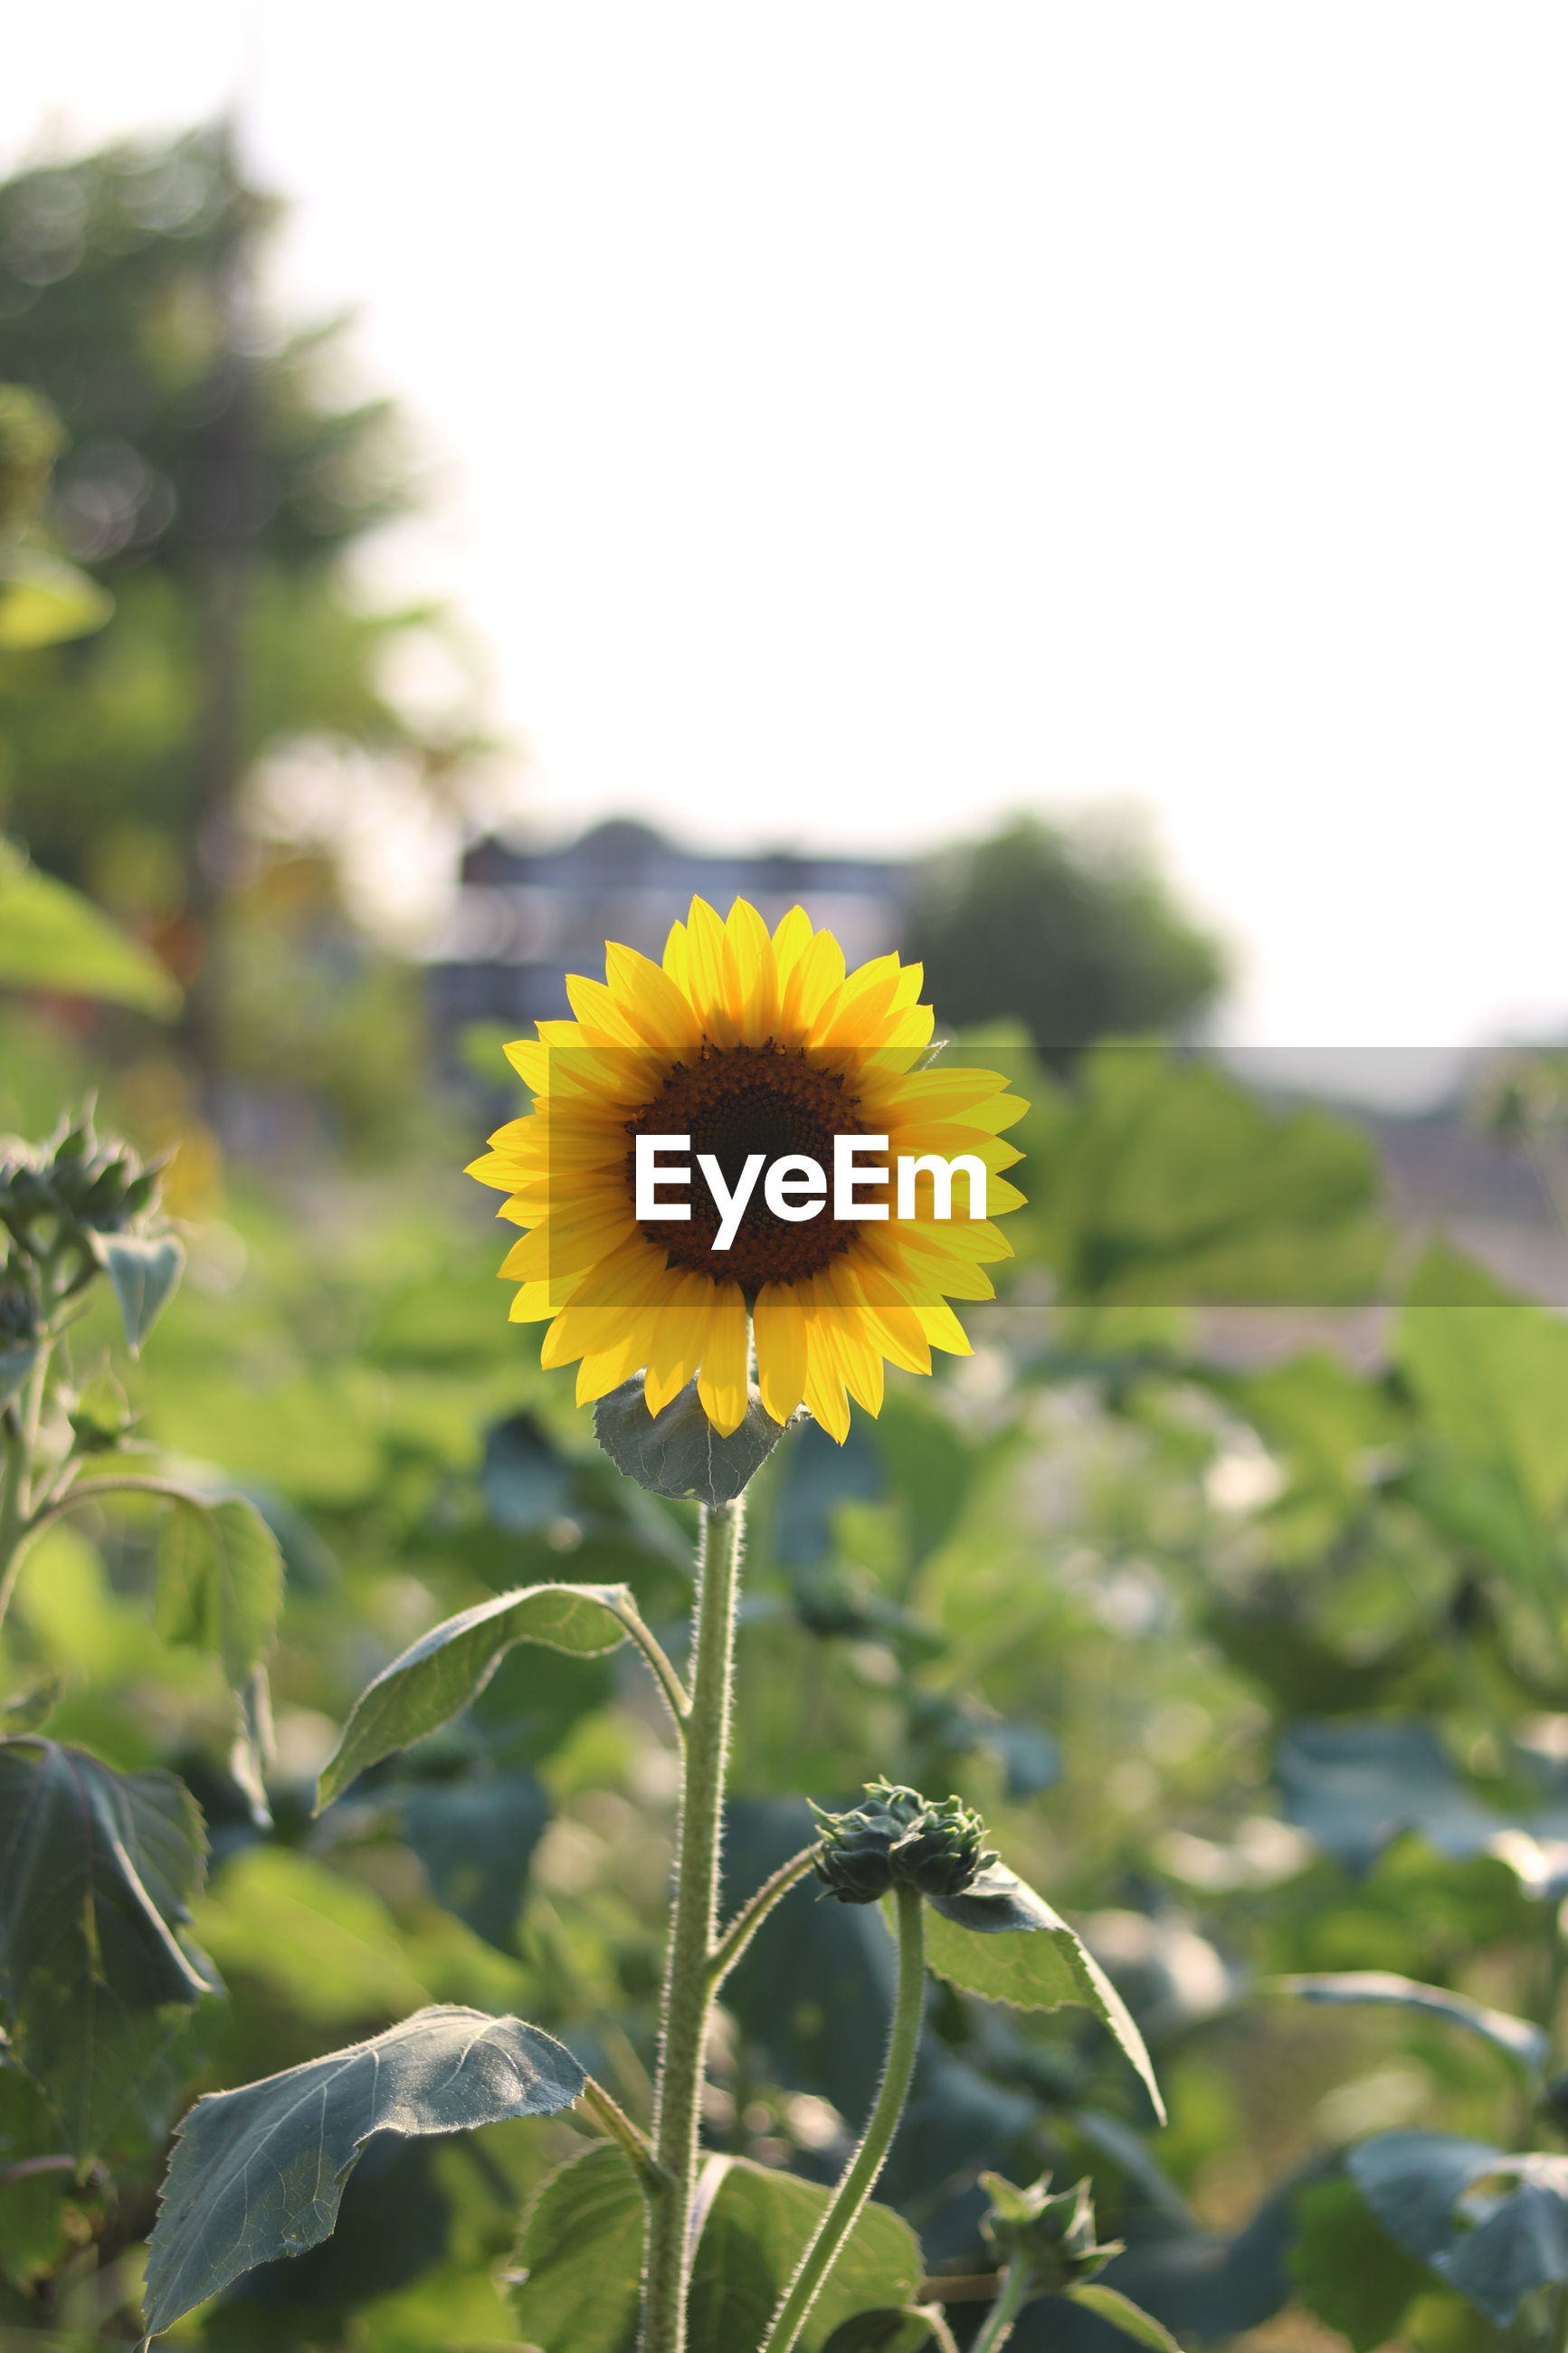 Close-up of sunflower growing outdoors against clear sky